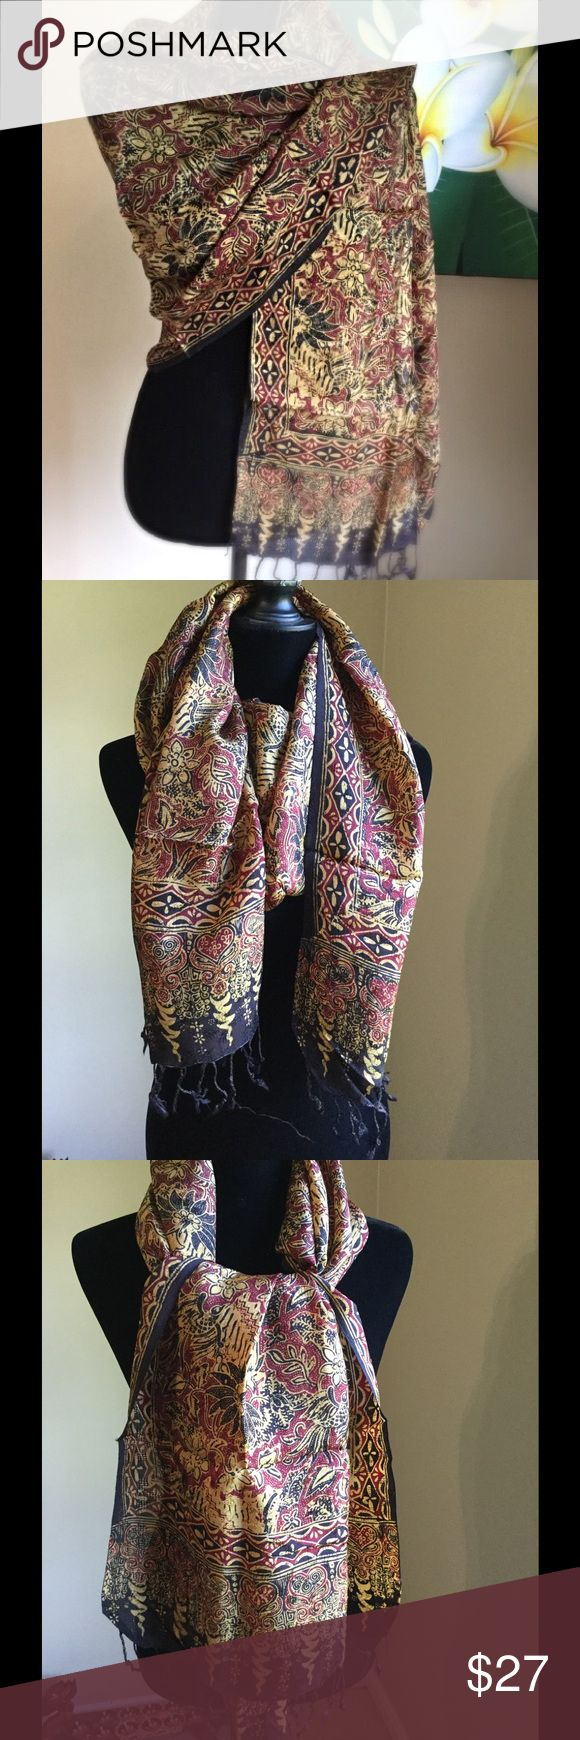 Batik scarf/shawl Indonesian stamped batik pattern scarf/shawl. Material viscose. It's light, and breathable material. Accessories Scarves & Wraps